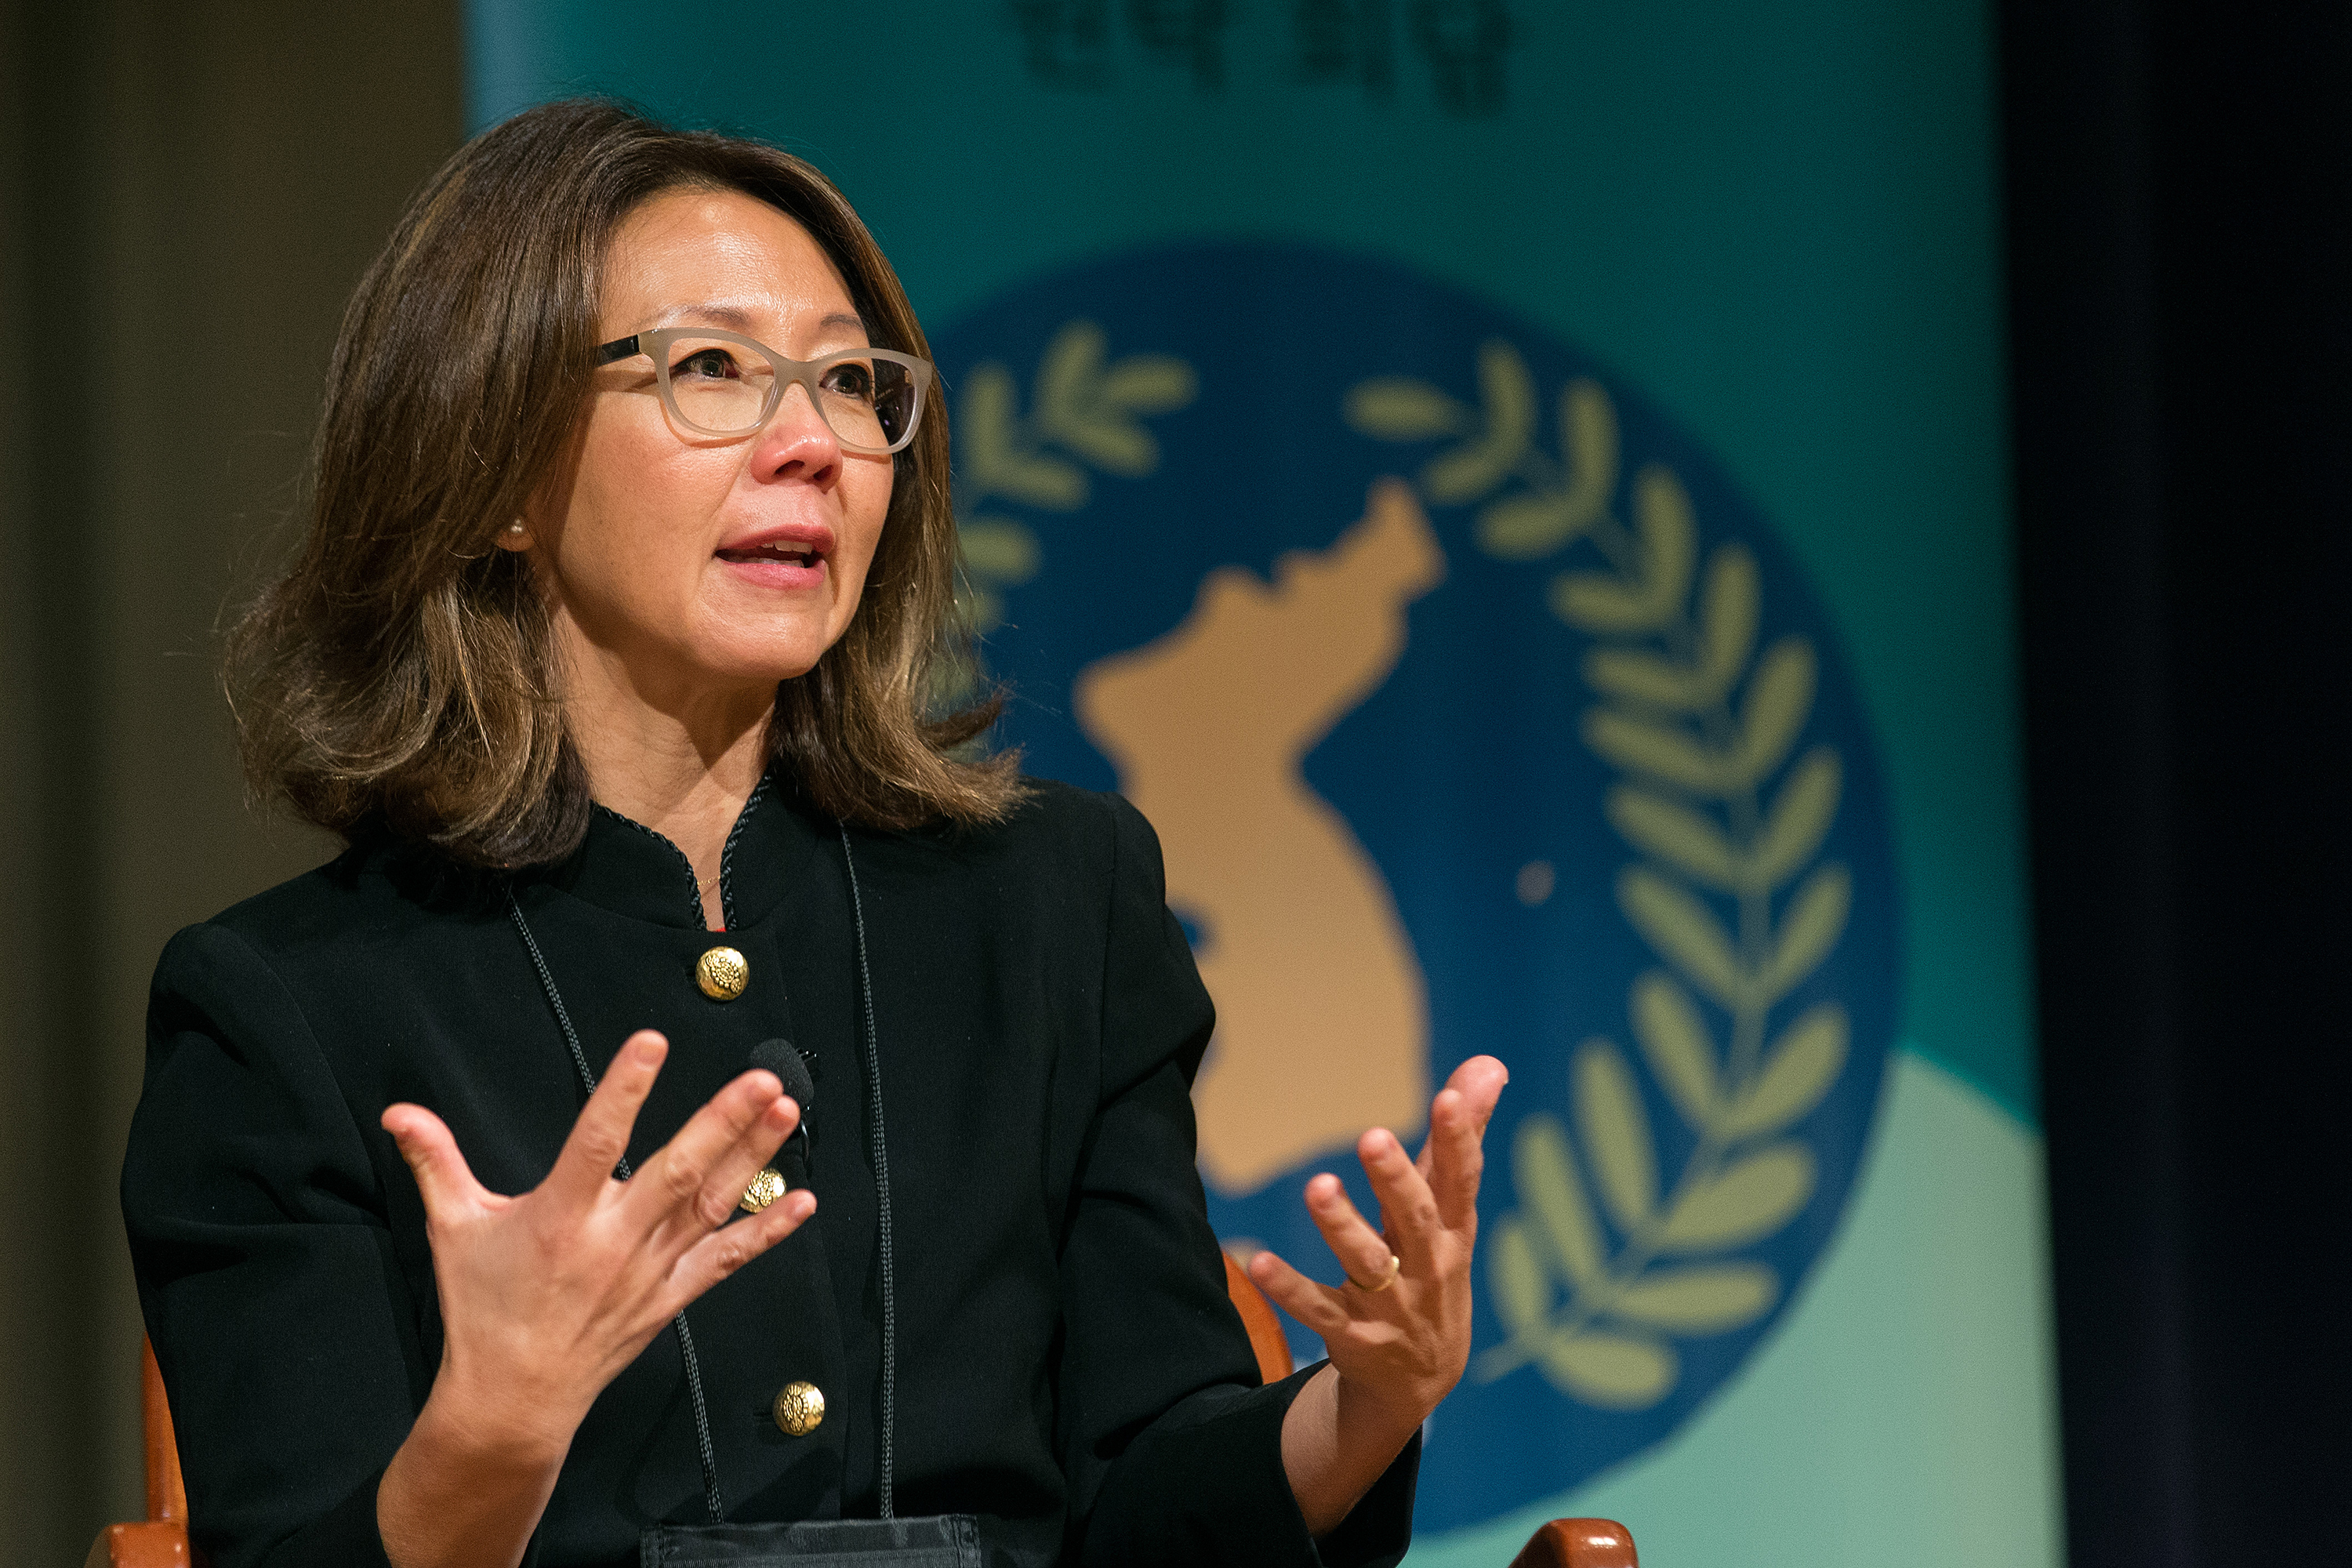 Christine Ahn speaks during the Roundtable for Peace on the Korean Peninsula in Atlanta. Ahn is founder of Women Cross DMZ, a global movement of women mobilizing to end the Korean War. Photo by Mike DuBose, UMNS.